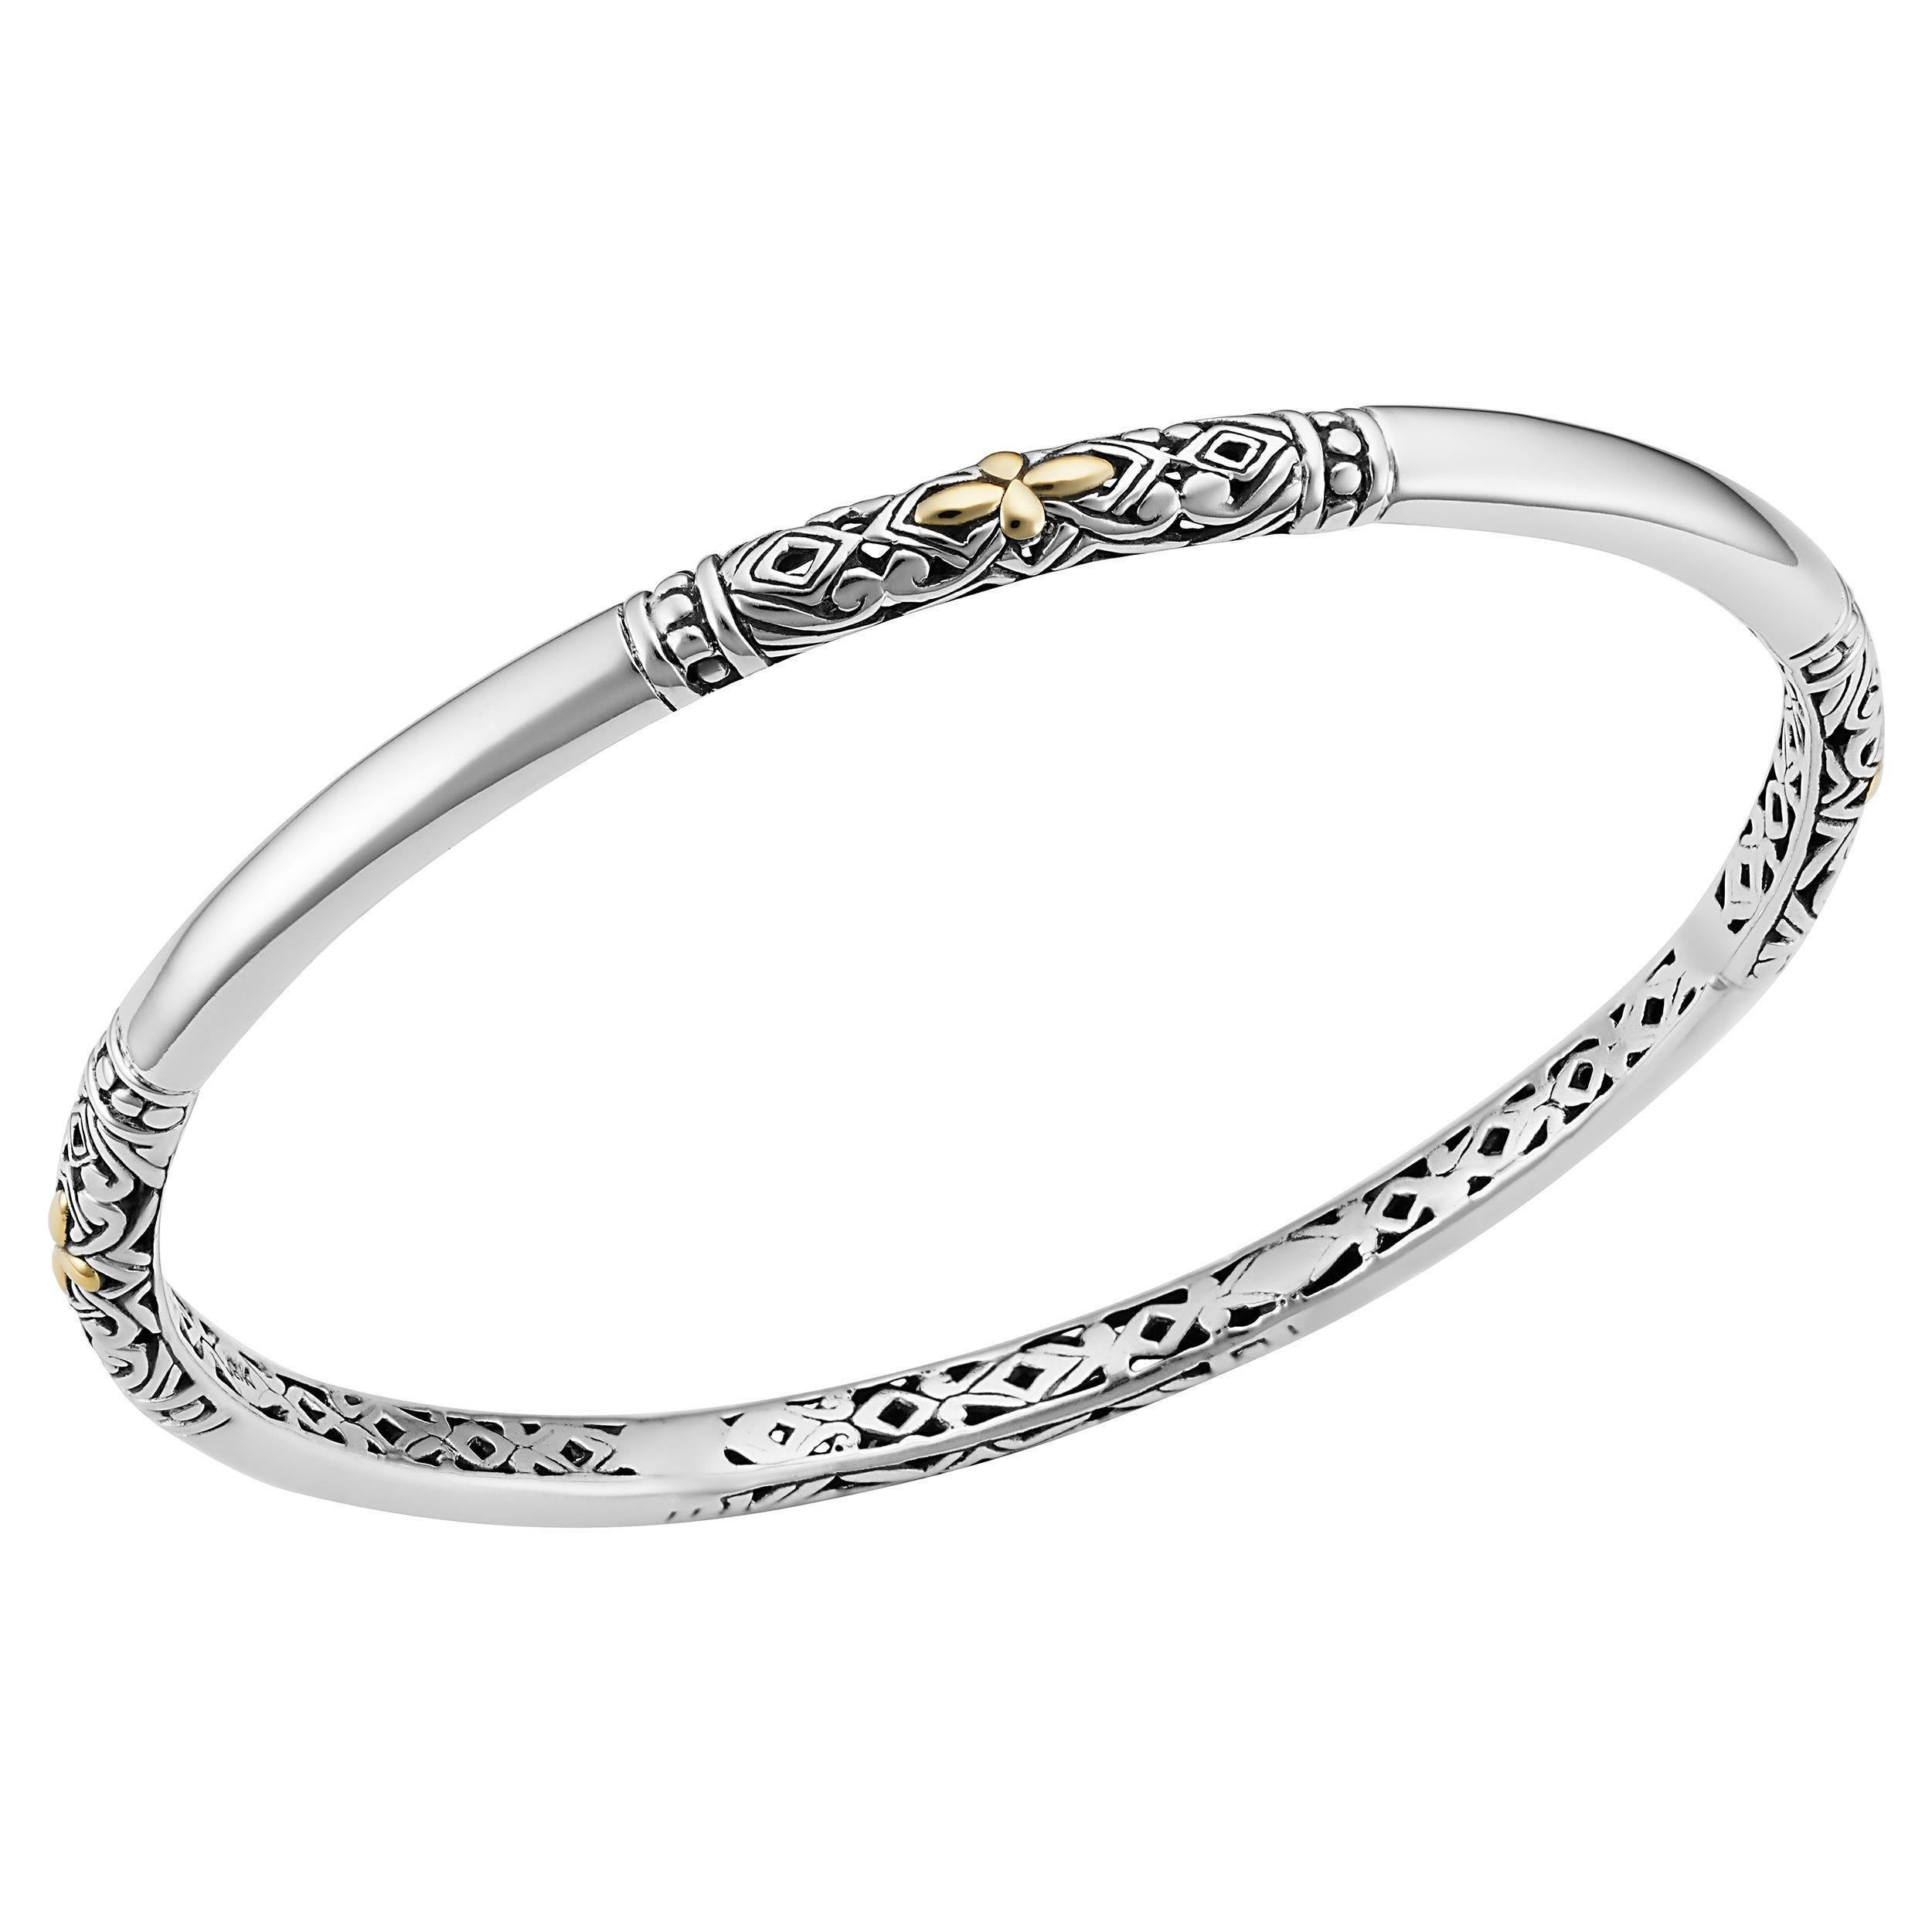 over plated silver which details crafted infinity artisan bangle thailand gold bracelets two highlights bangles this from hand catching symbol tone eye sterling vermeil pb a katsaya pks rose plain centerpiece products bracelet